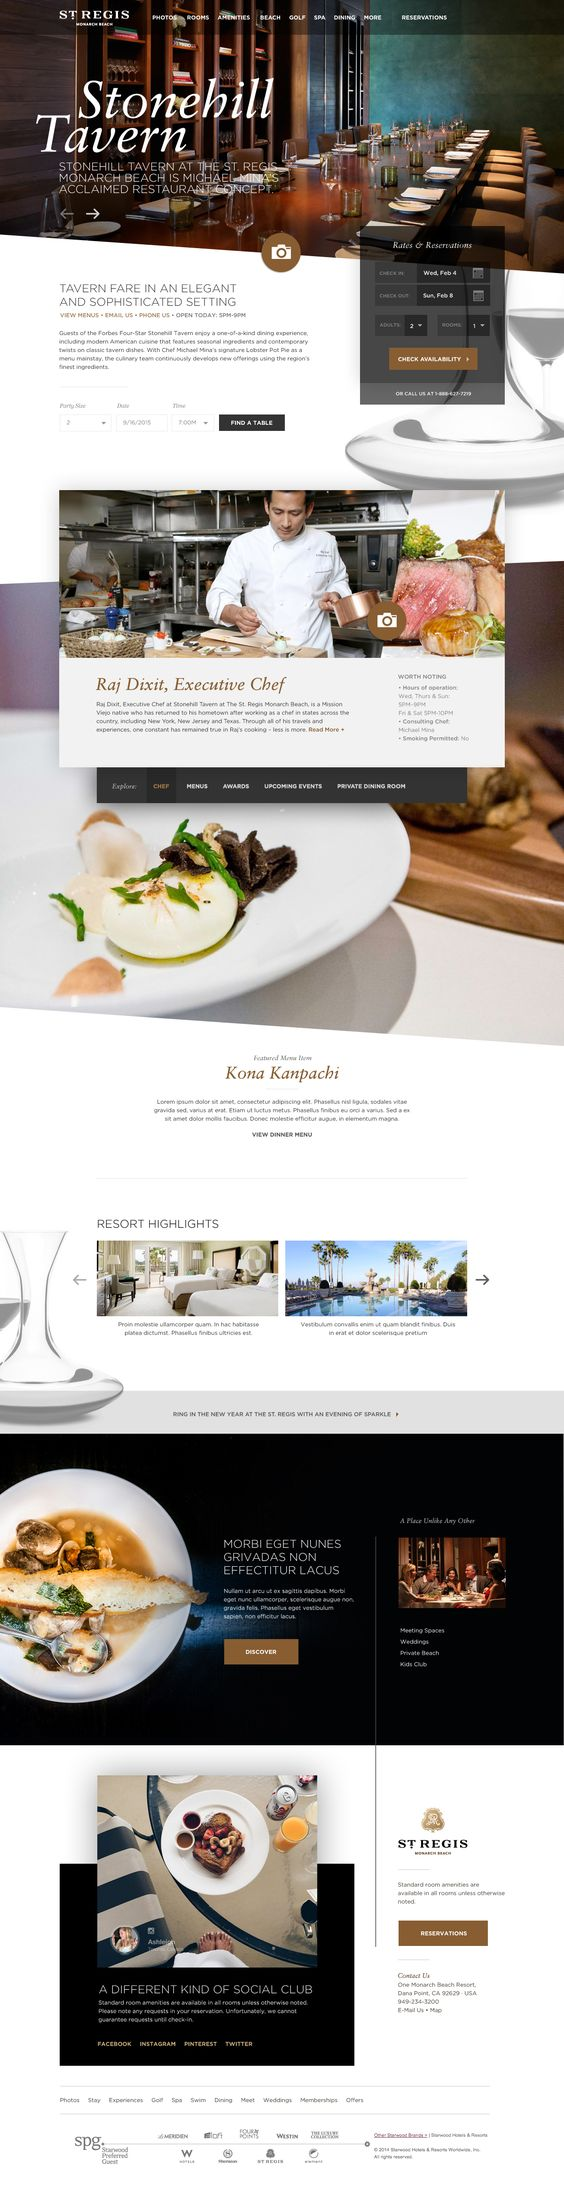 St. Regis Monarch Beach Resort Website on Behance